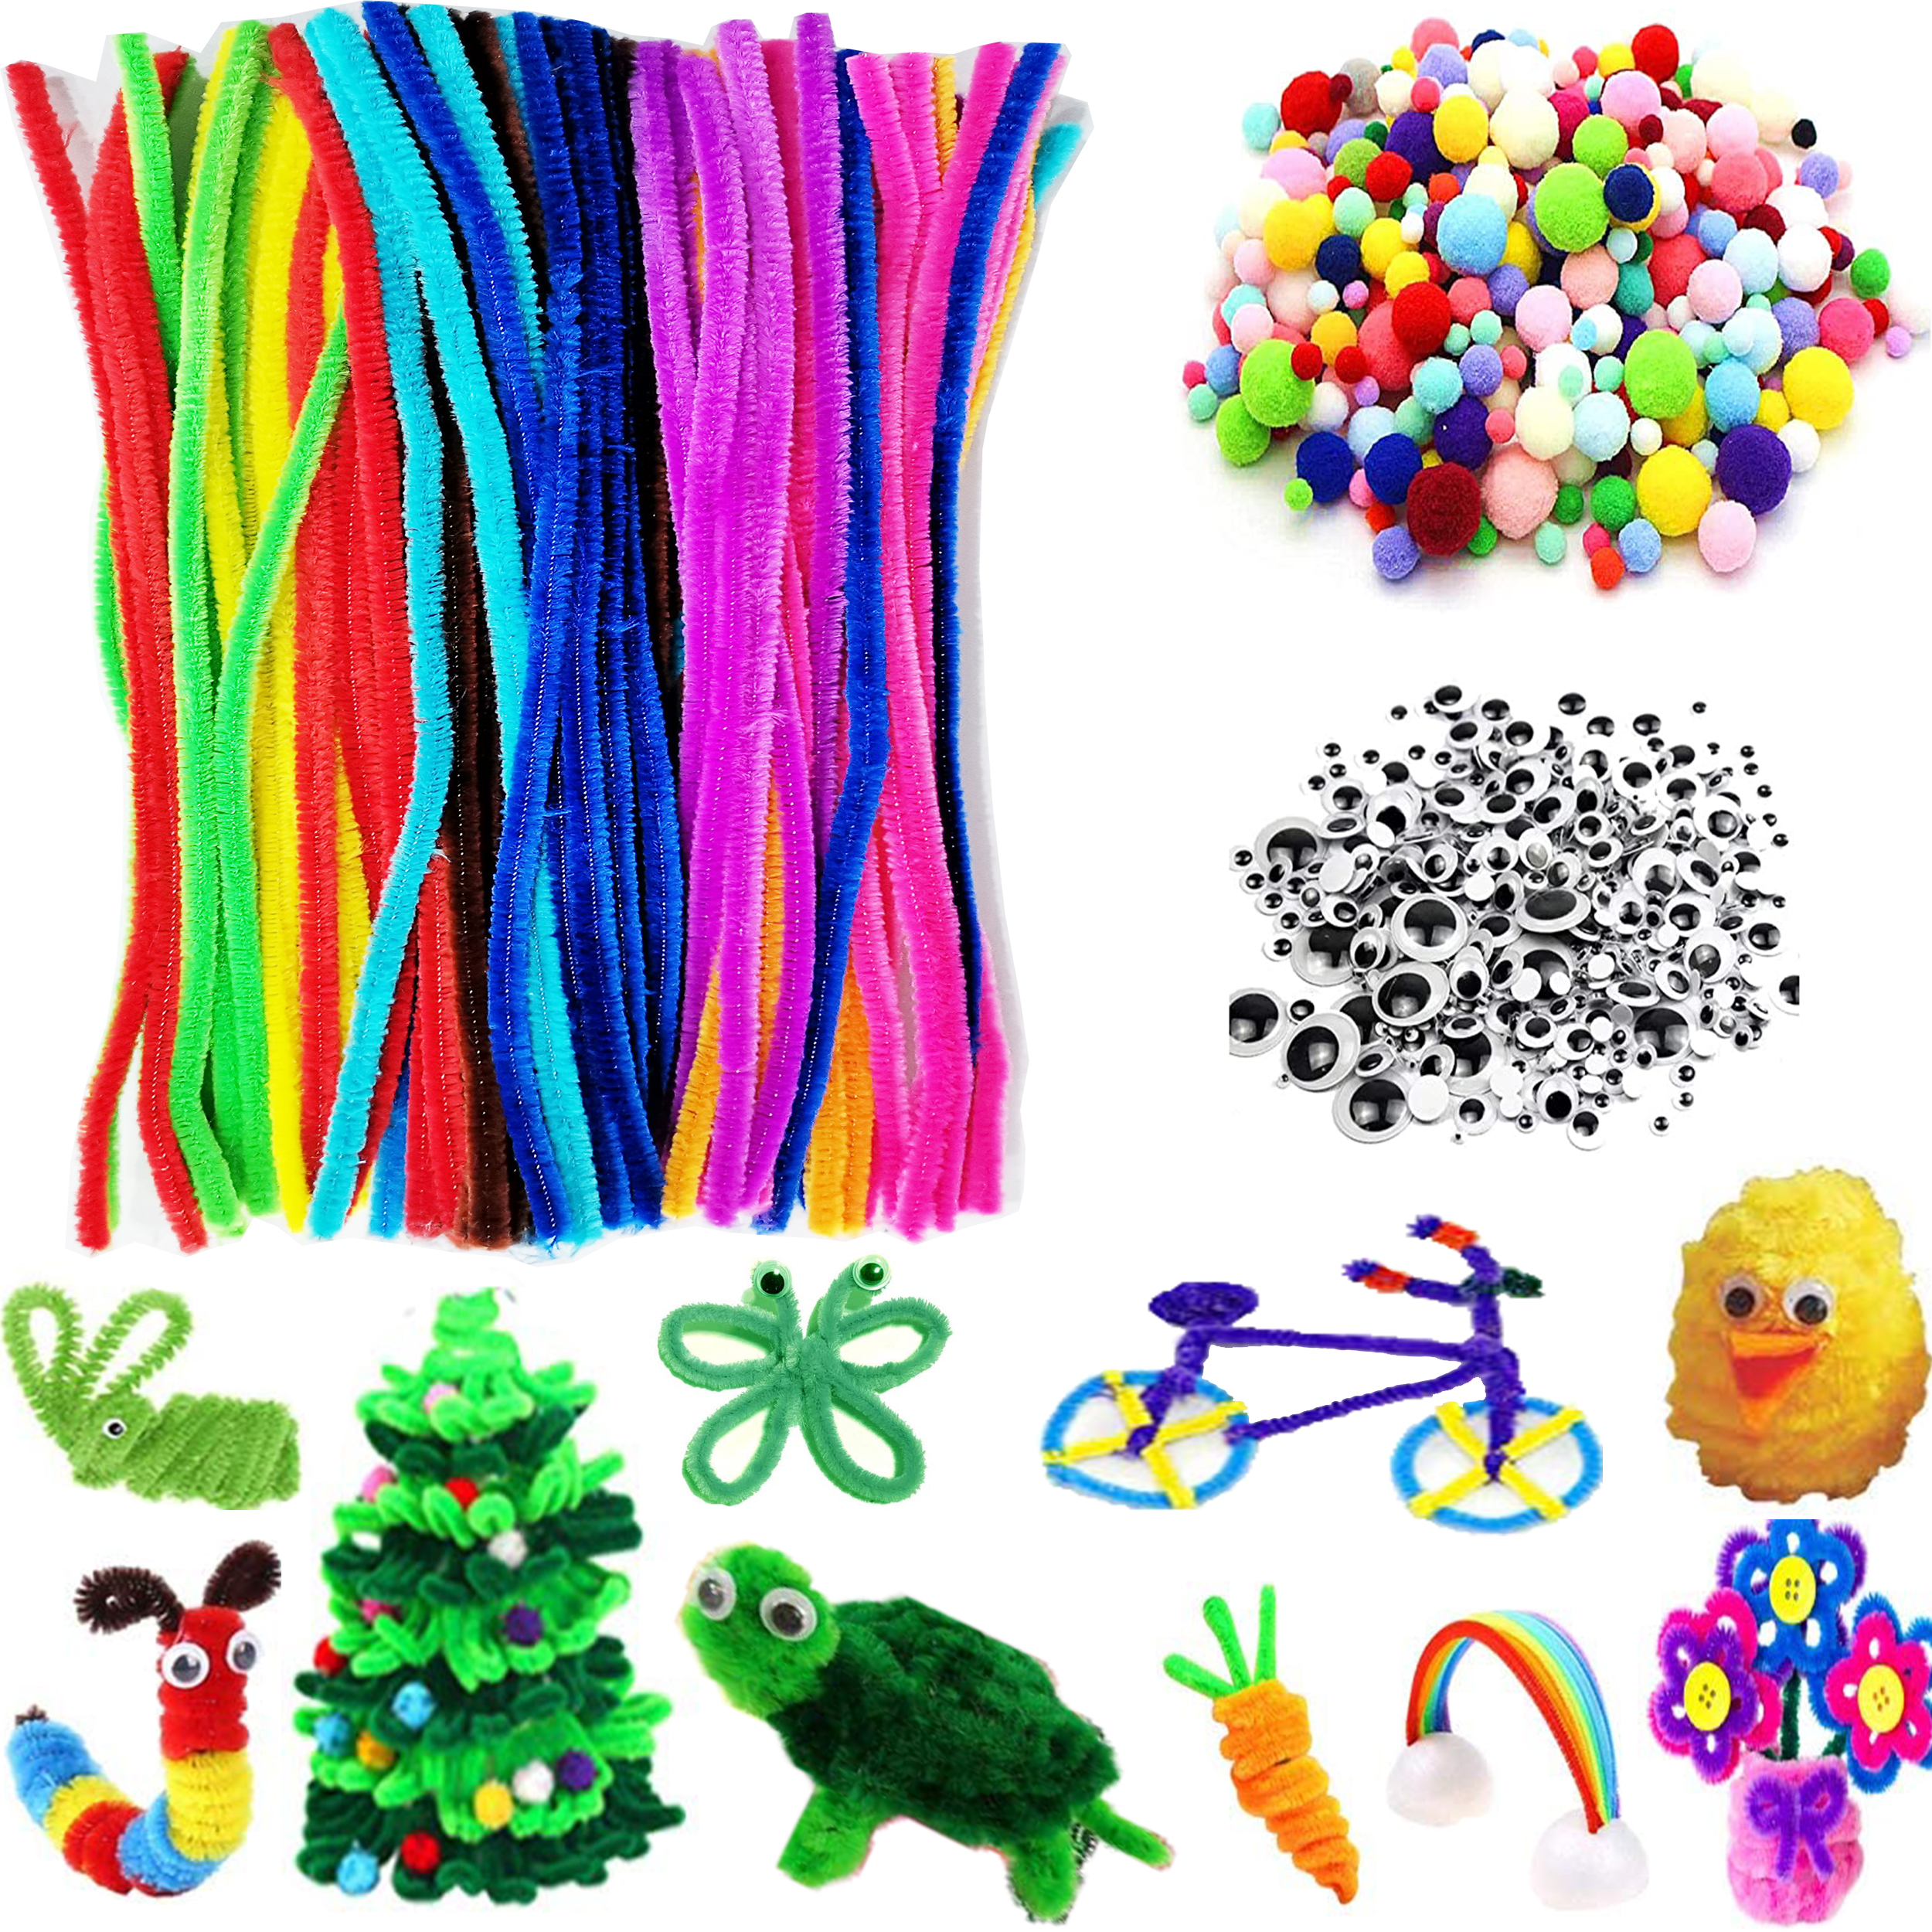 Pipe Cleaners Wooden Ornaments Wiggle Googly Eyes Pom Poms 860 PCS Assorted DIY Art Craft Kit Gem Stickers Art Decoration Party Supplies Gift for School Preschool Crafting Activities Aged 4+